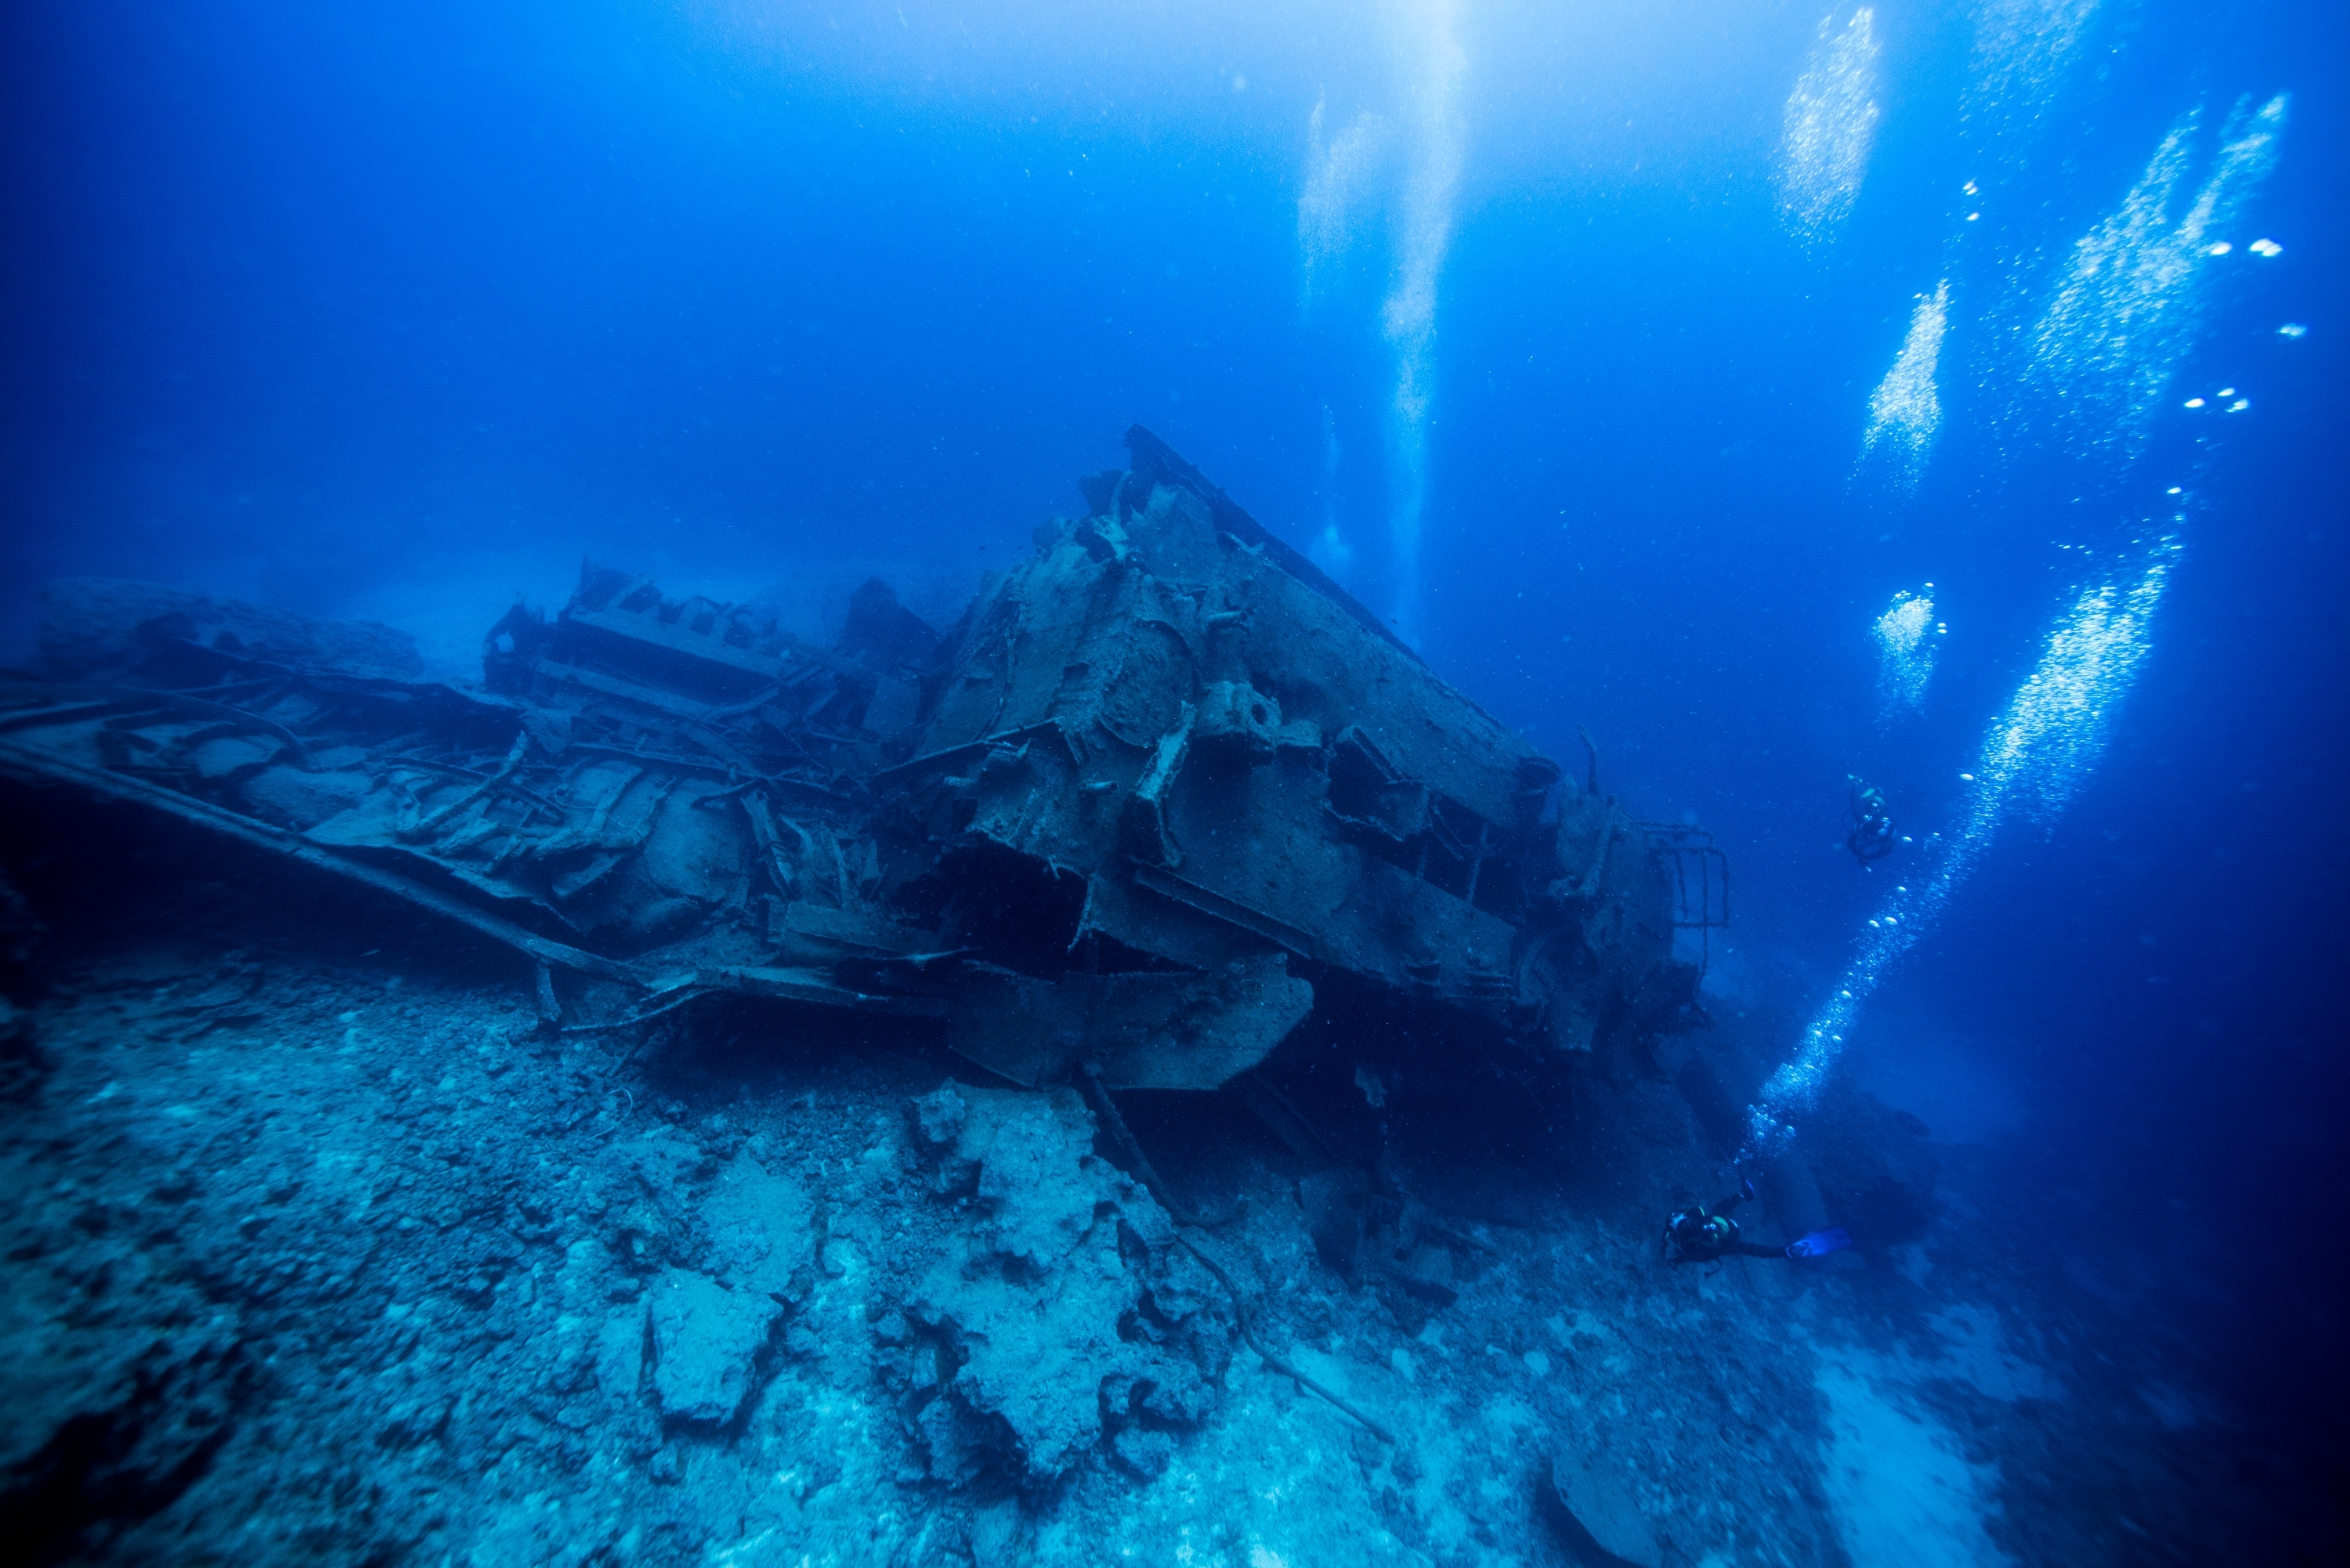 Divers On A Shipwreck